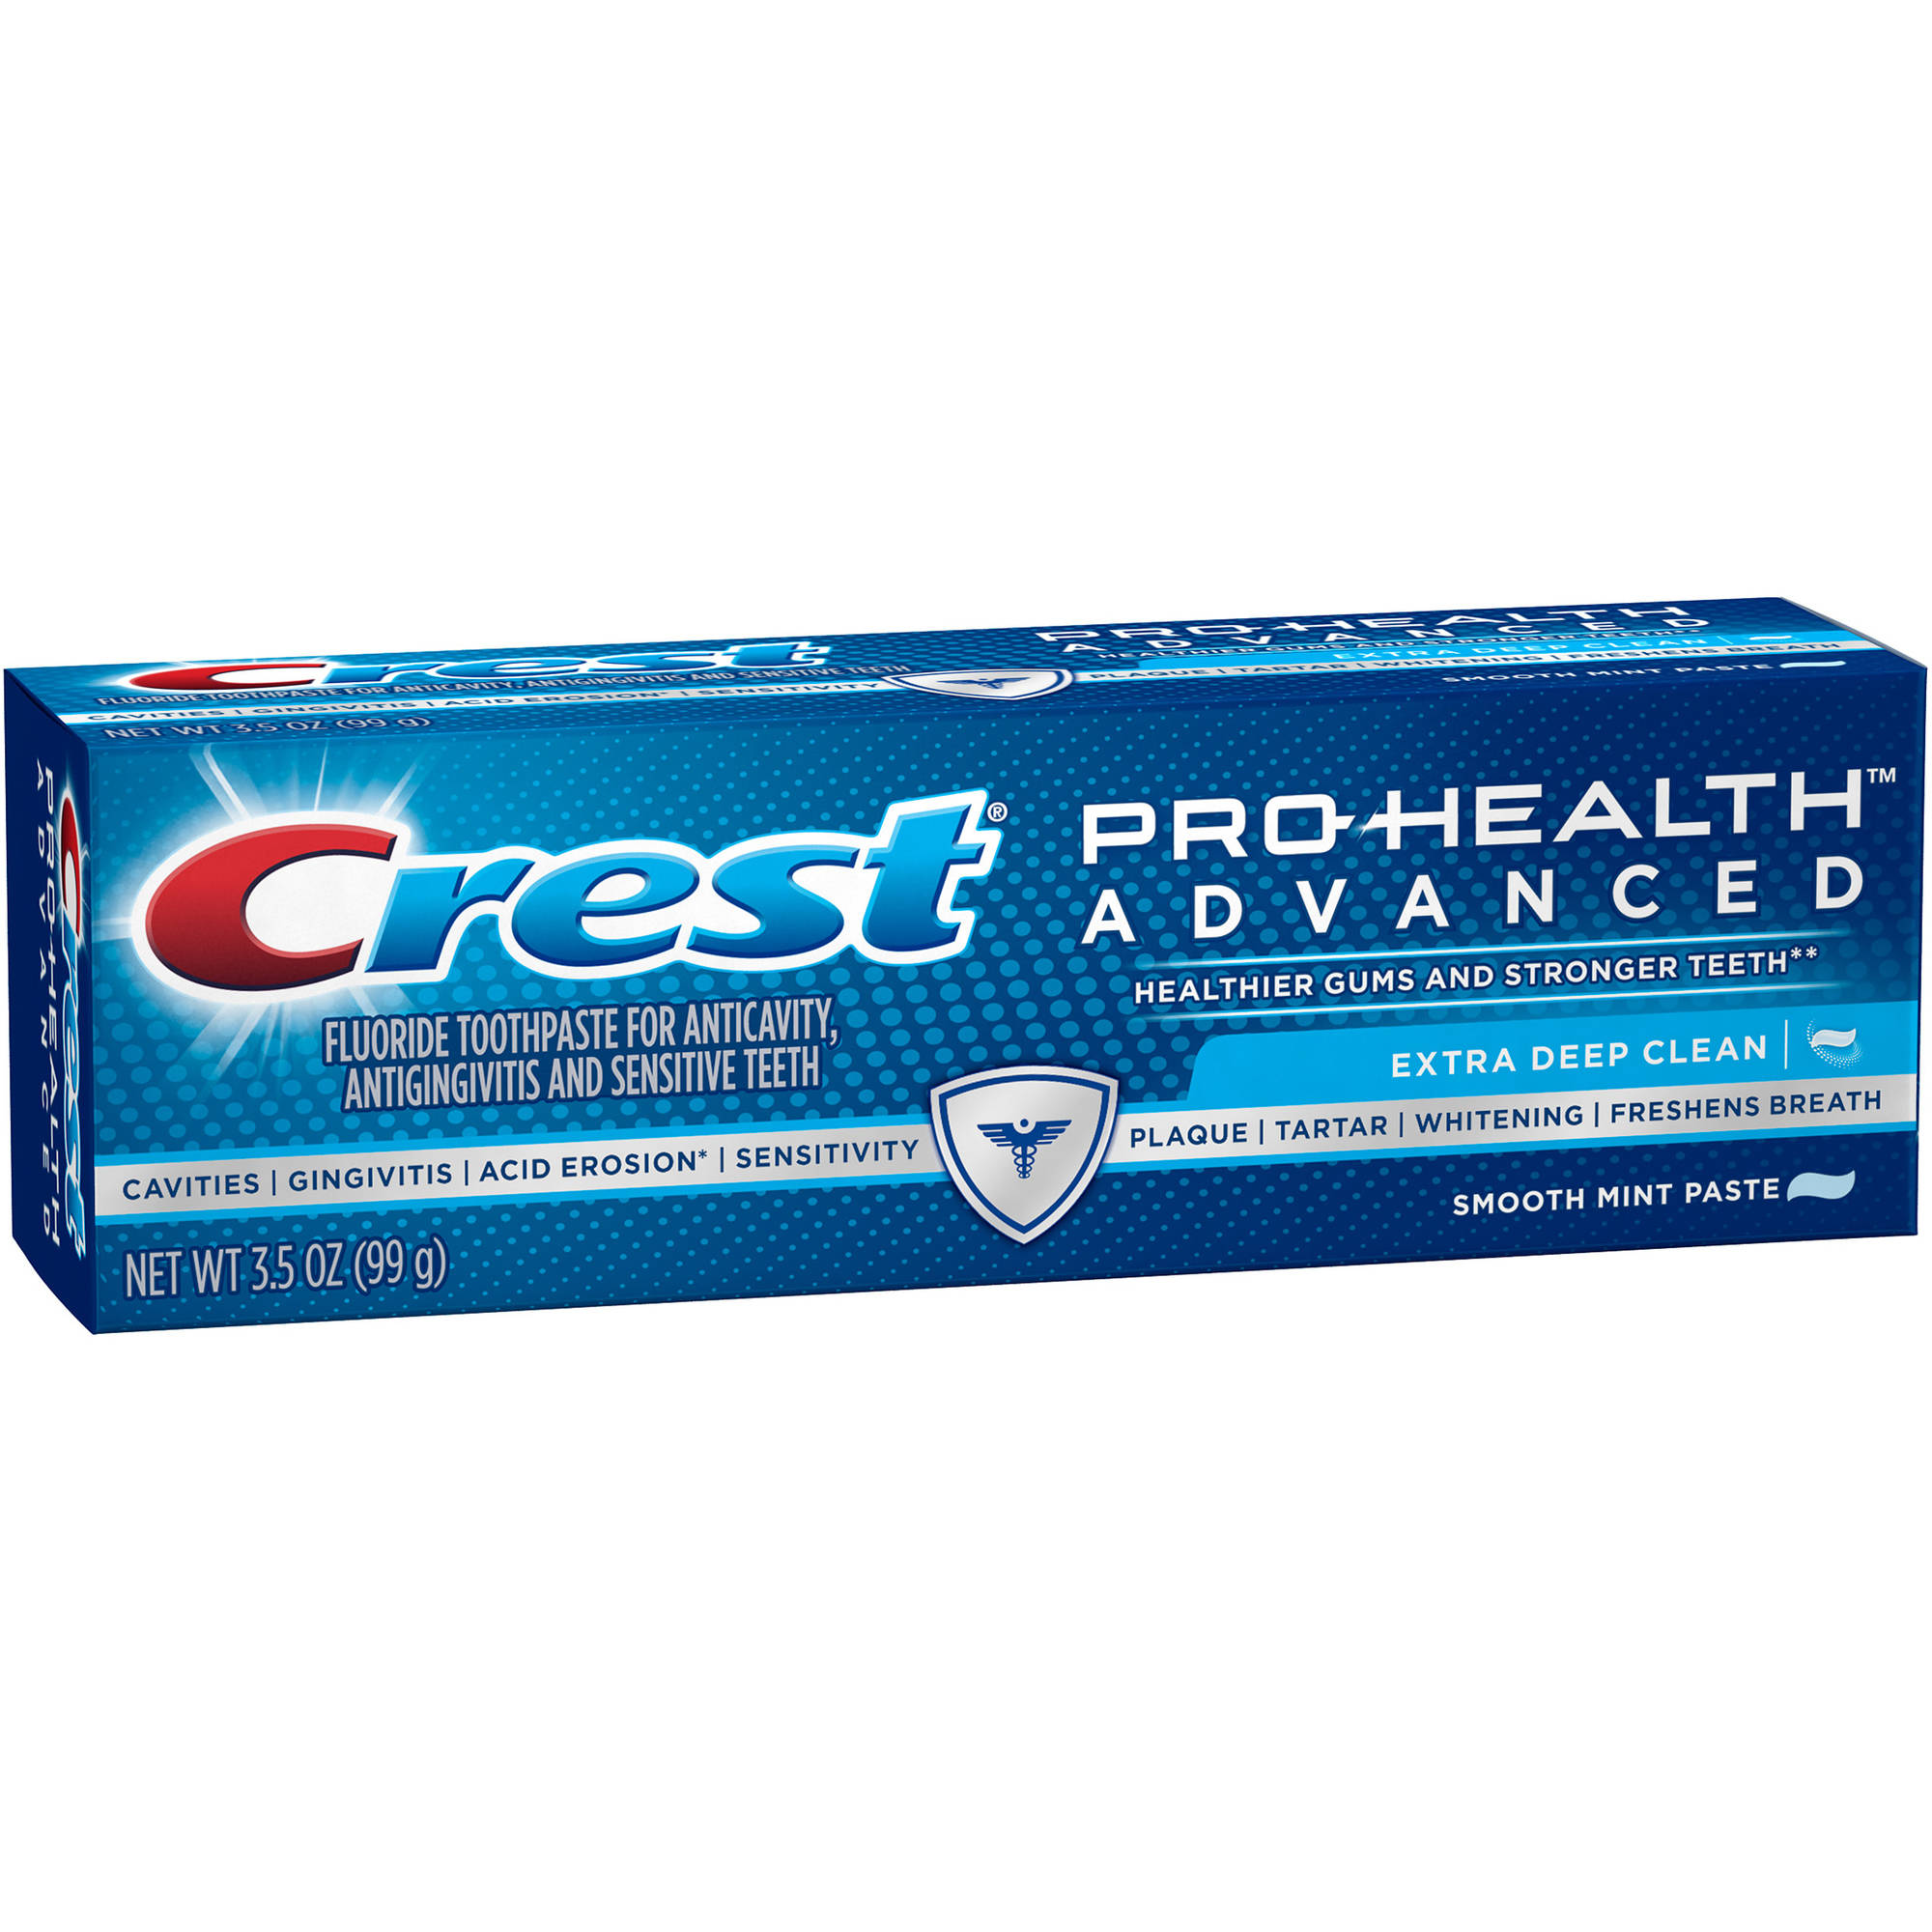 Crest Pro-Health Advanced Extra Deep Clean Smooth Mint Paste Toothpaste, 3.5 oz